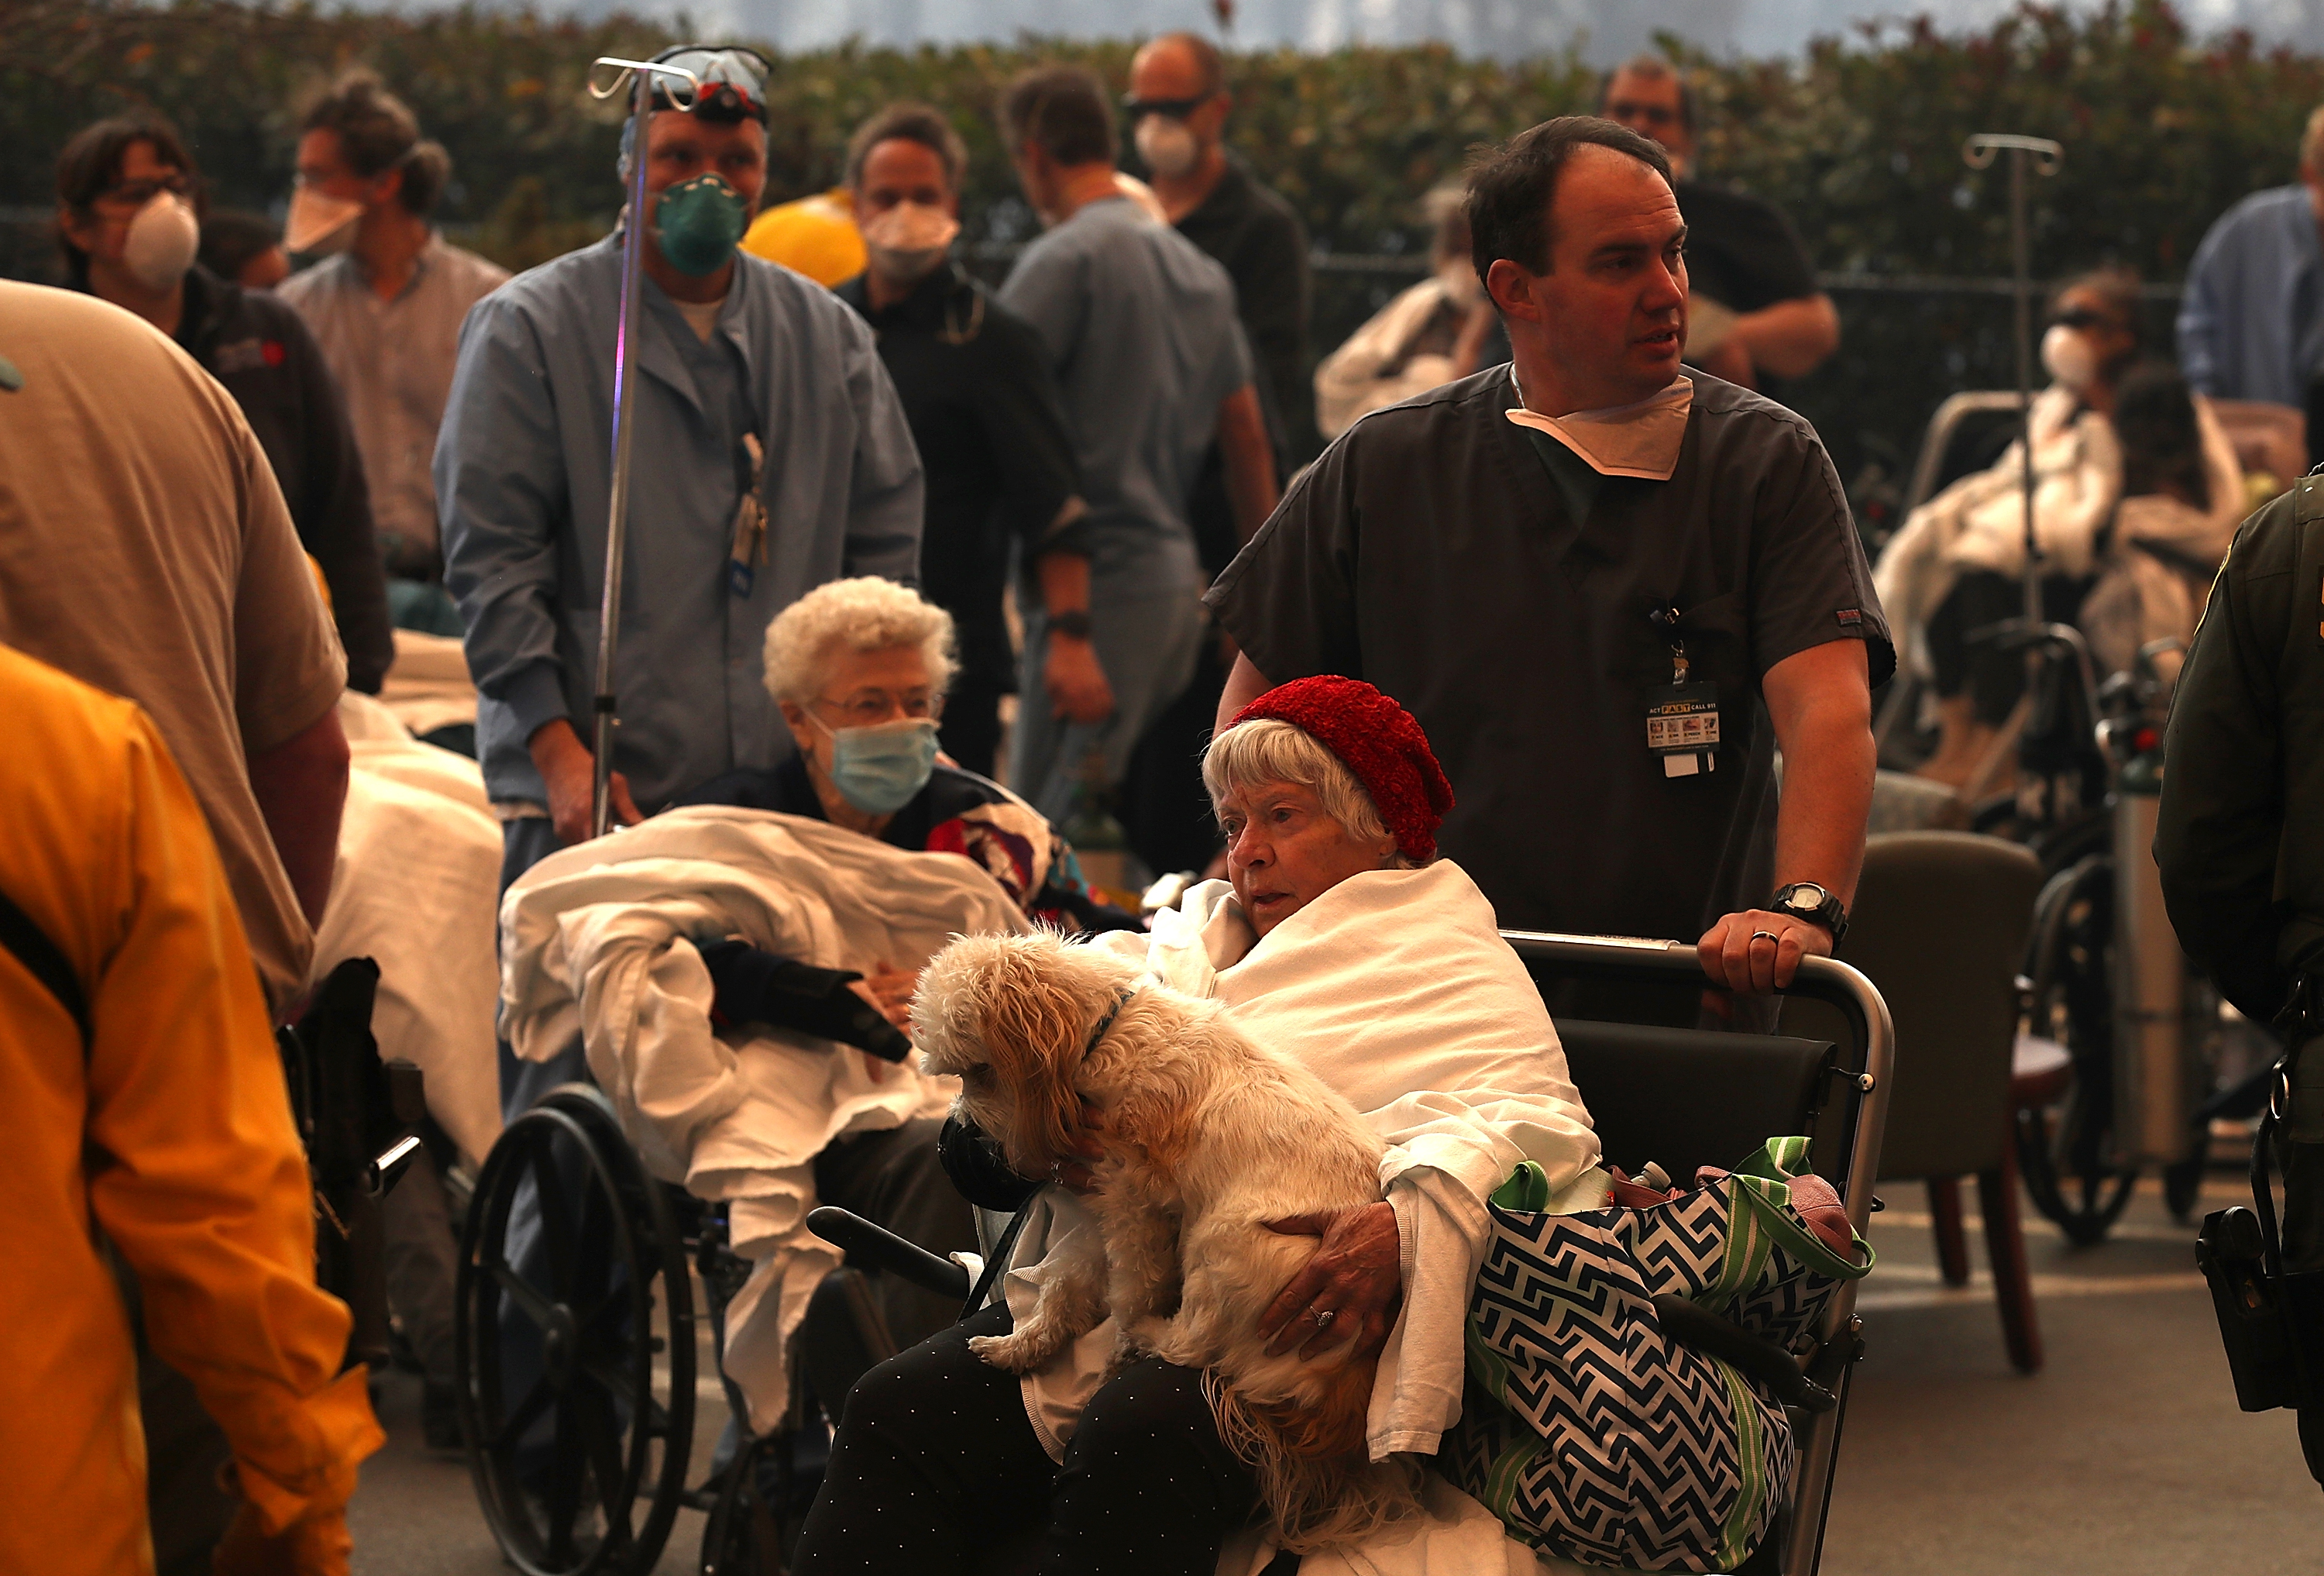 Hospital workers and first responders evacuate patients from the Feather River Hospital as the Camp Fire moves through the area on November 8, 2018, in Paradise, California. (Getty Images)